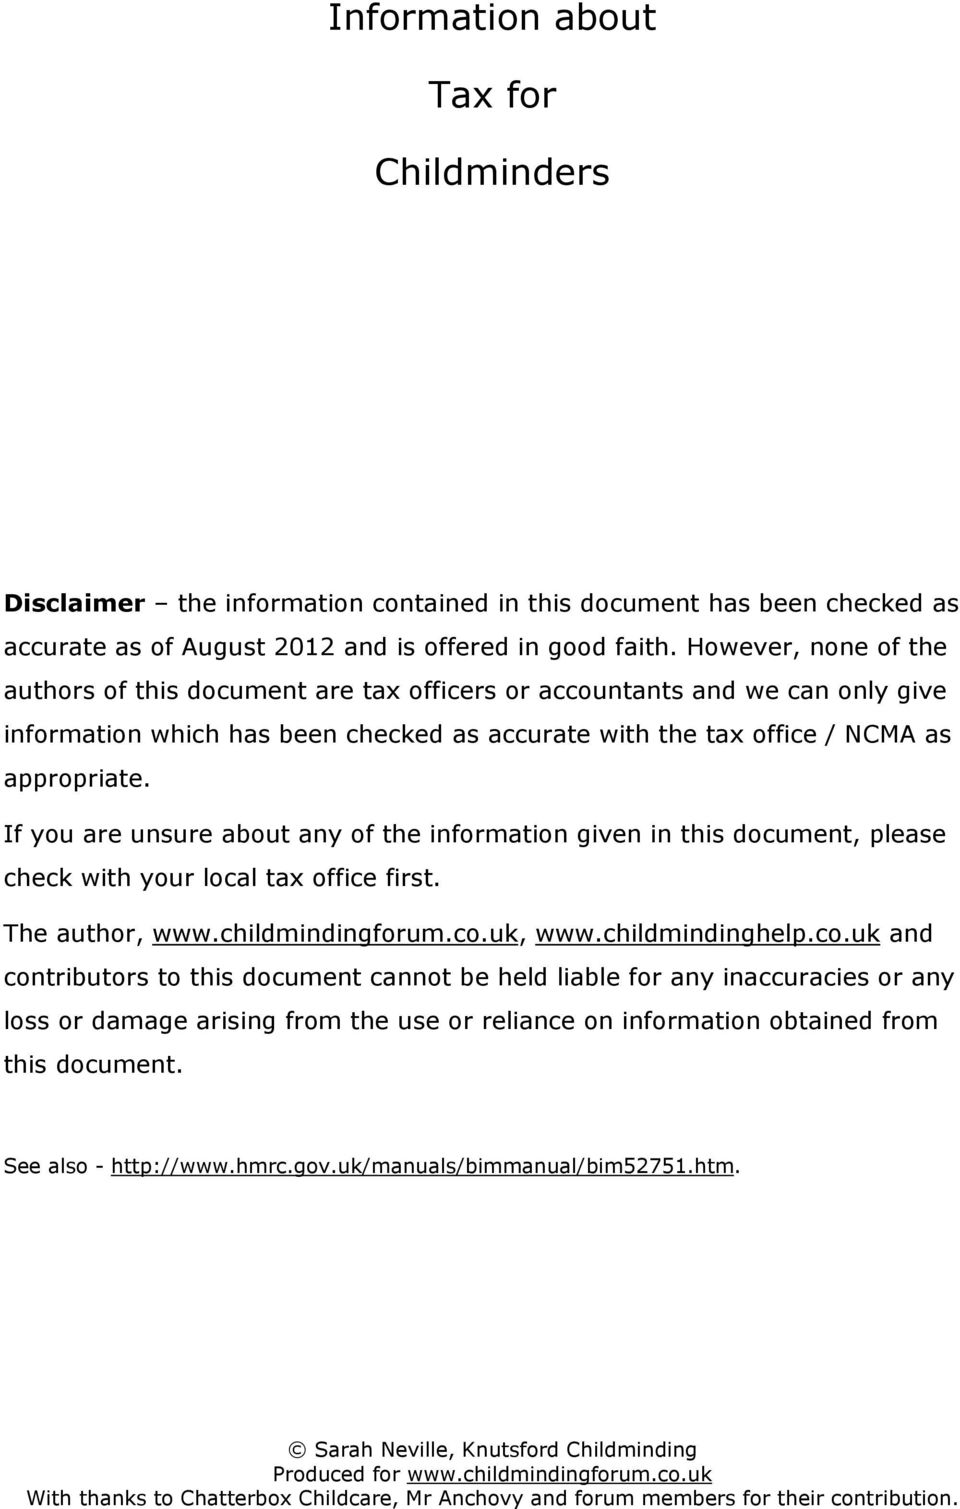 If you are unsure about any of the information given in this document, please check with your local tax office first. The author, www.childmindingforum.co.